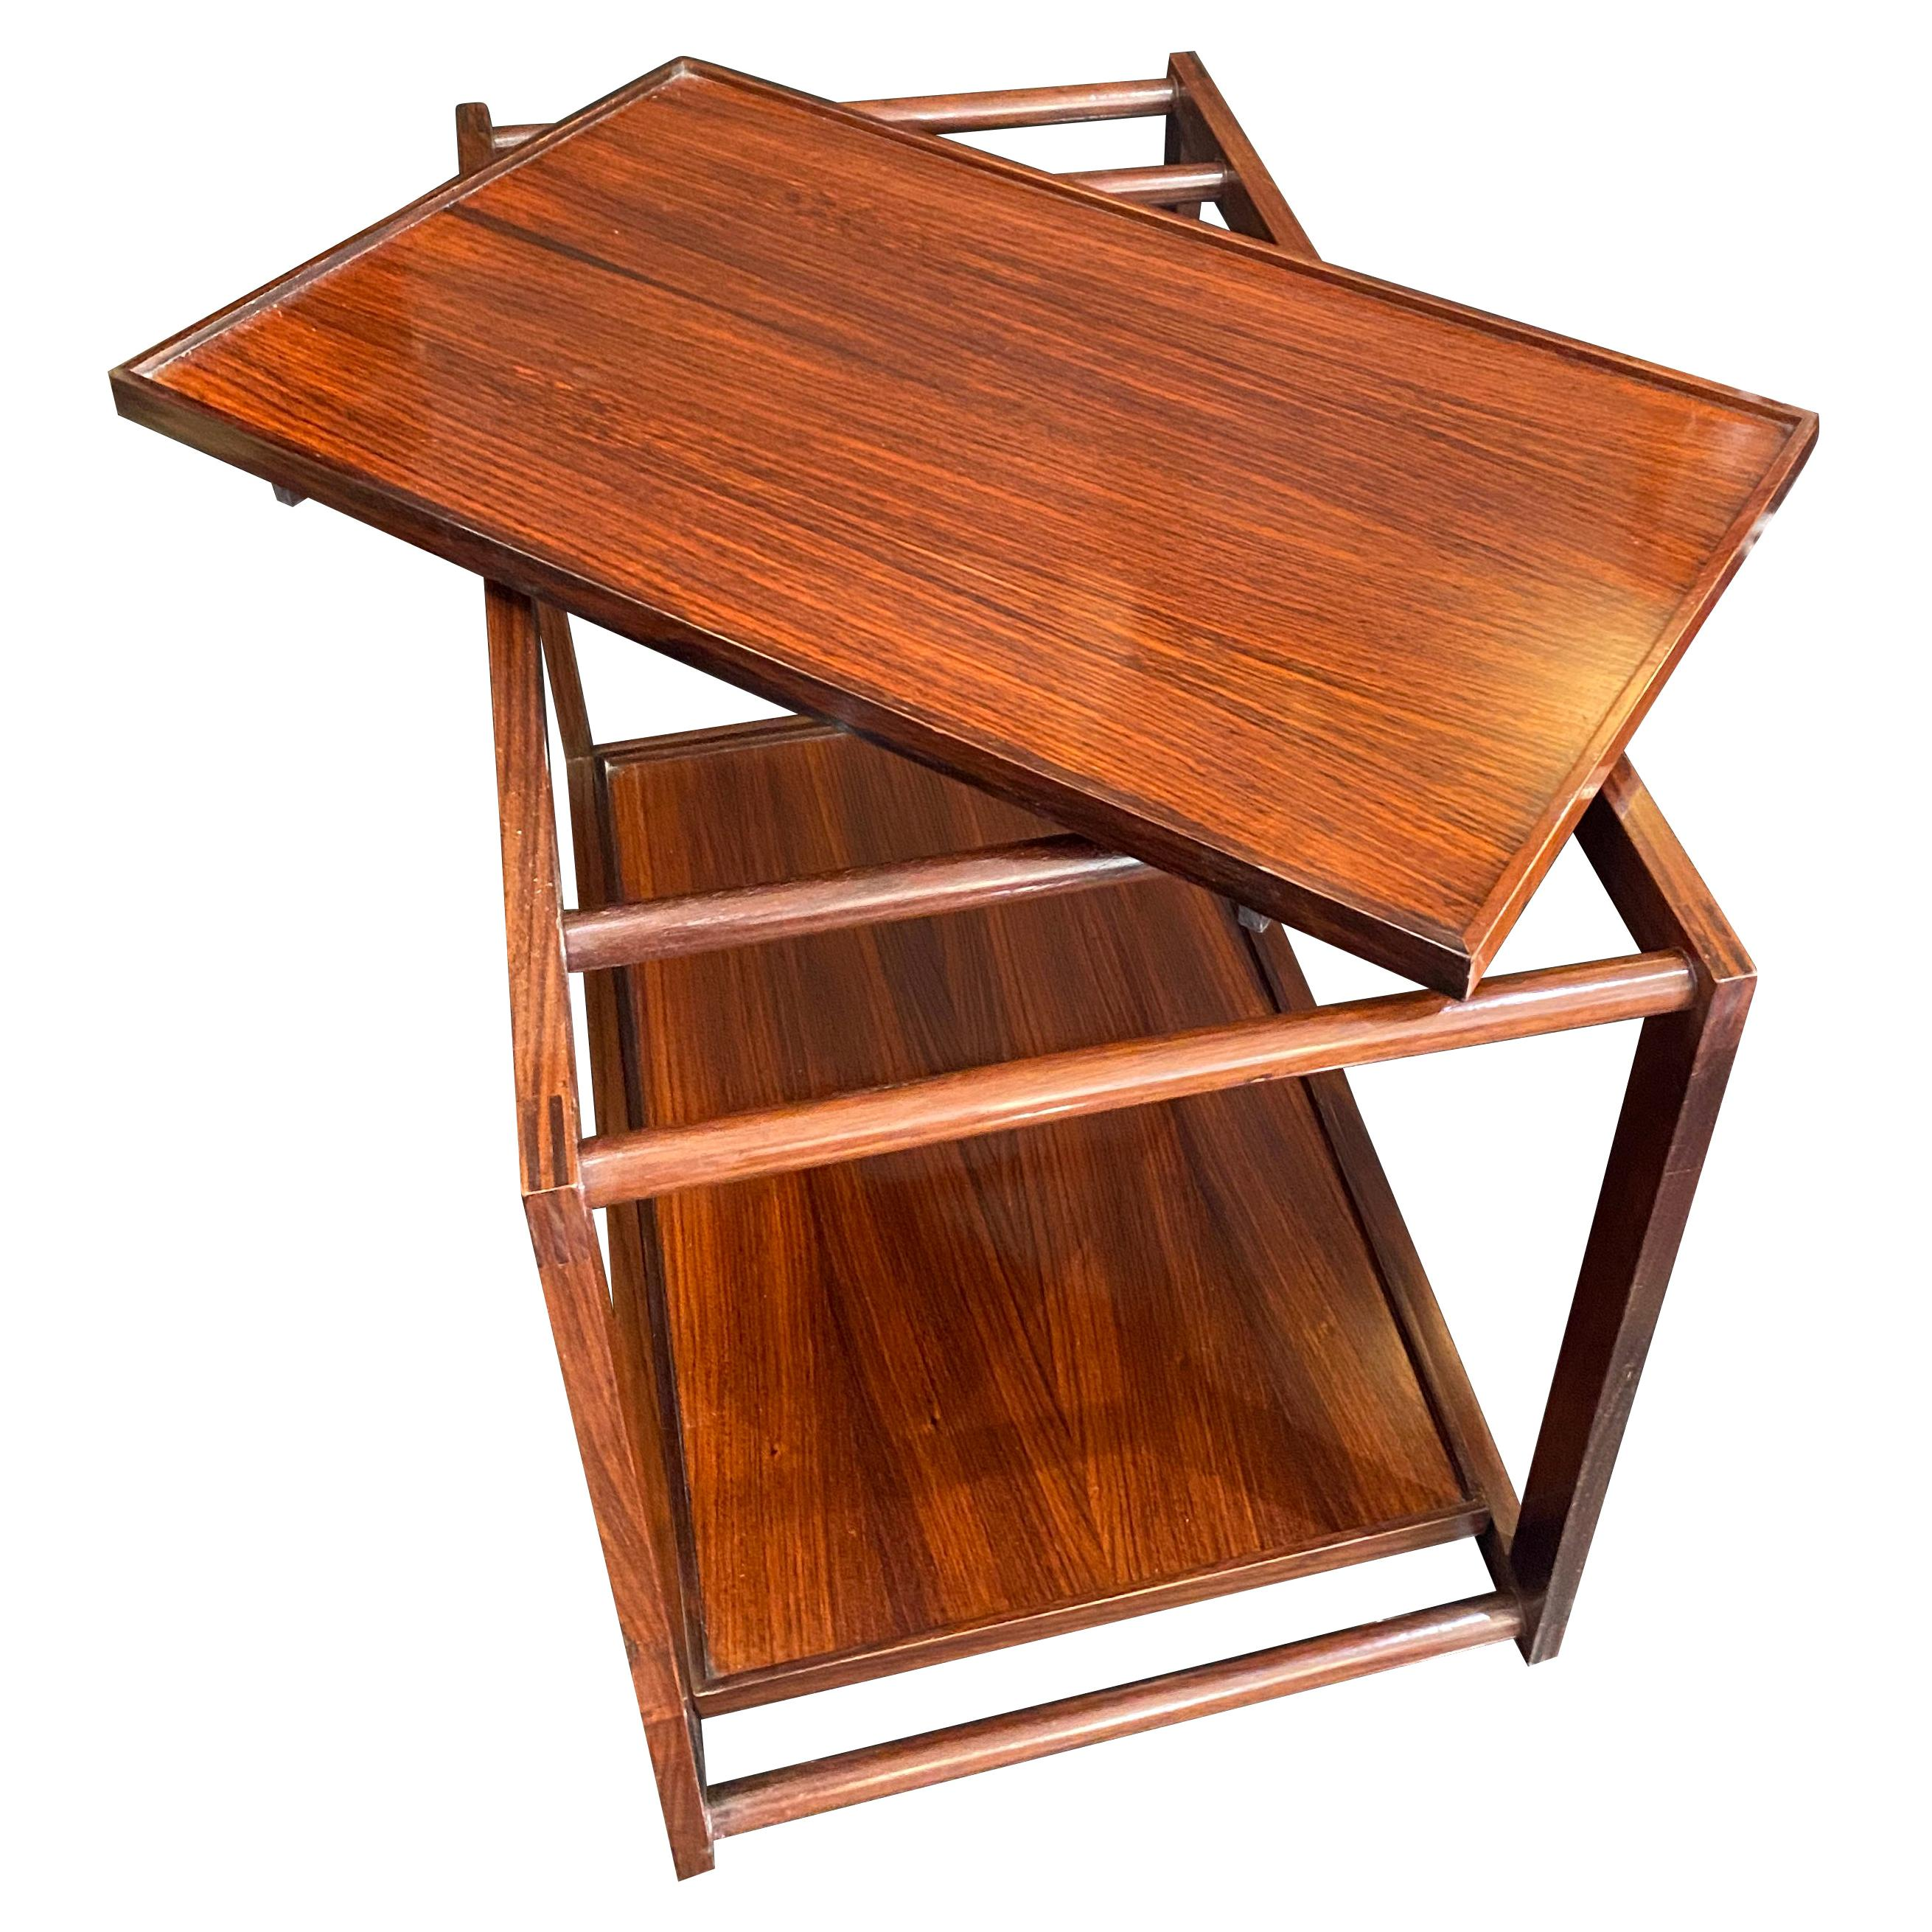 Cesare Lacca for Cassina Bar Cart